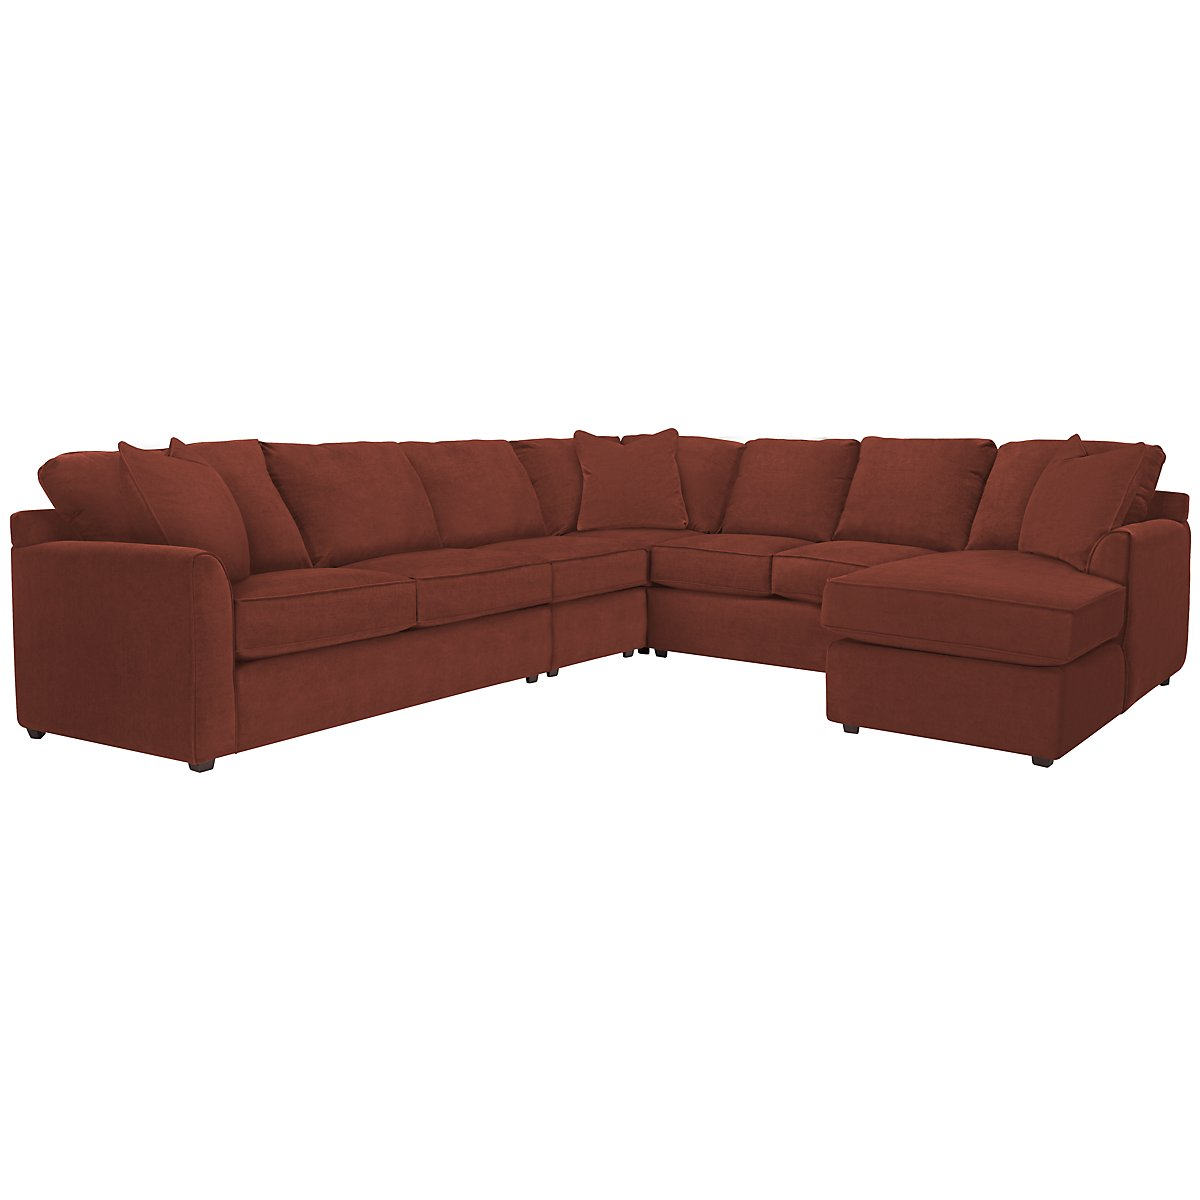 Express3 Red Microfiber Large Right Chaise Sectional